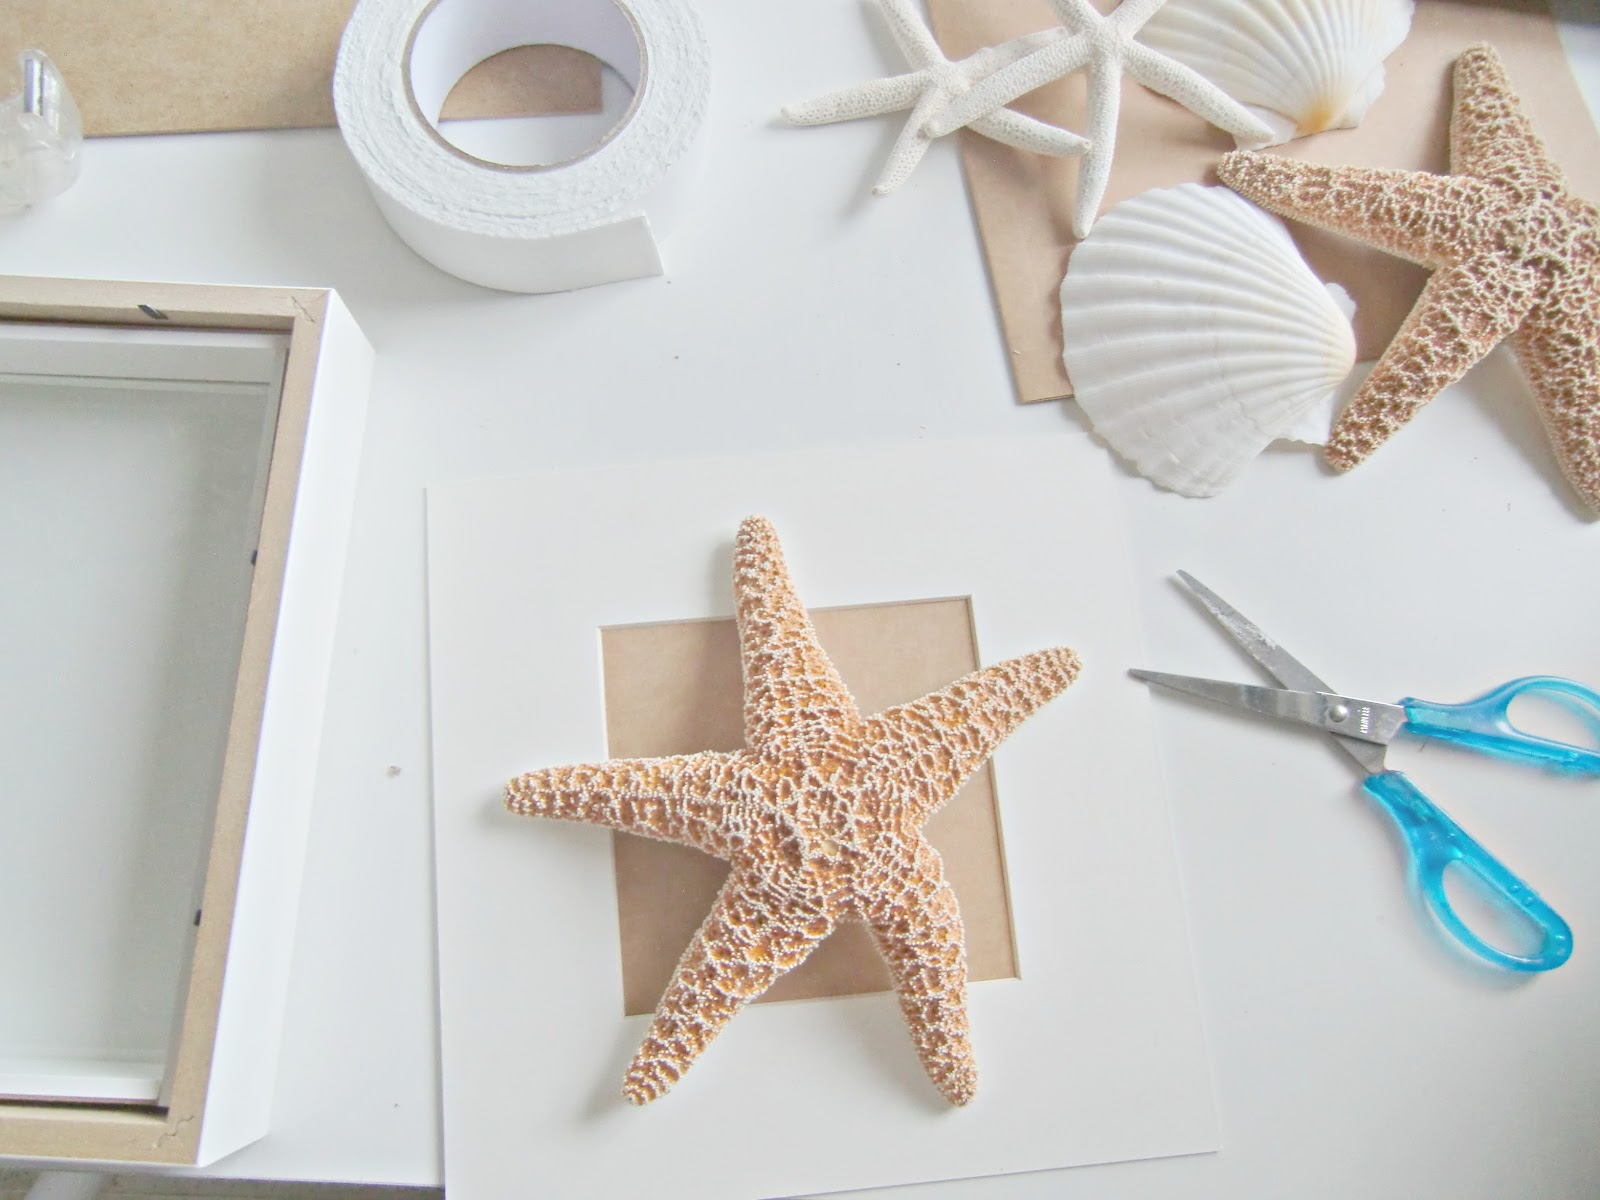 Diy Cuadros Diy Cuadros De Conchas Y Estrellas De Mar Diy Shells And